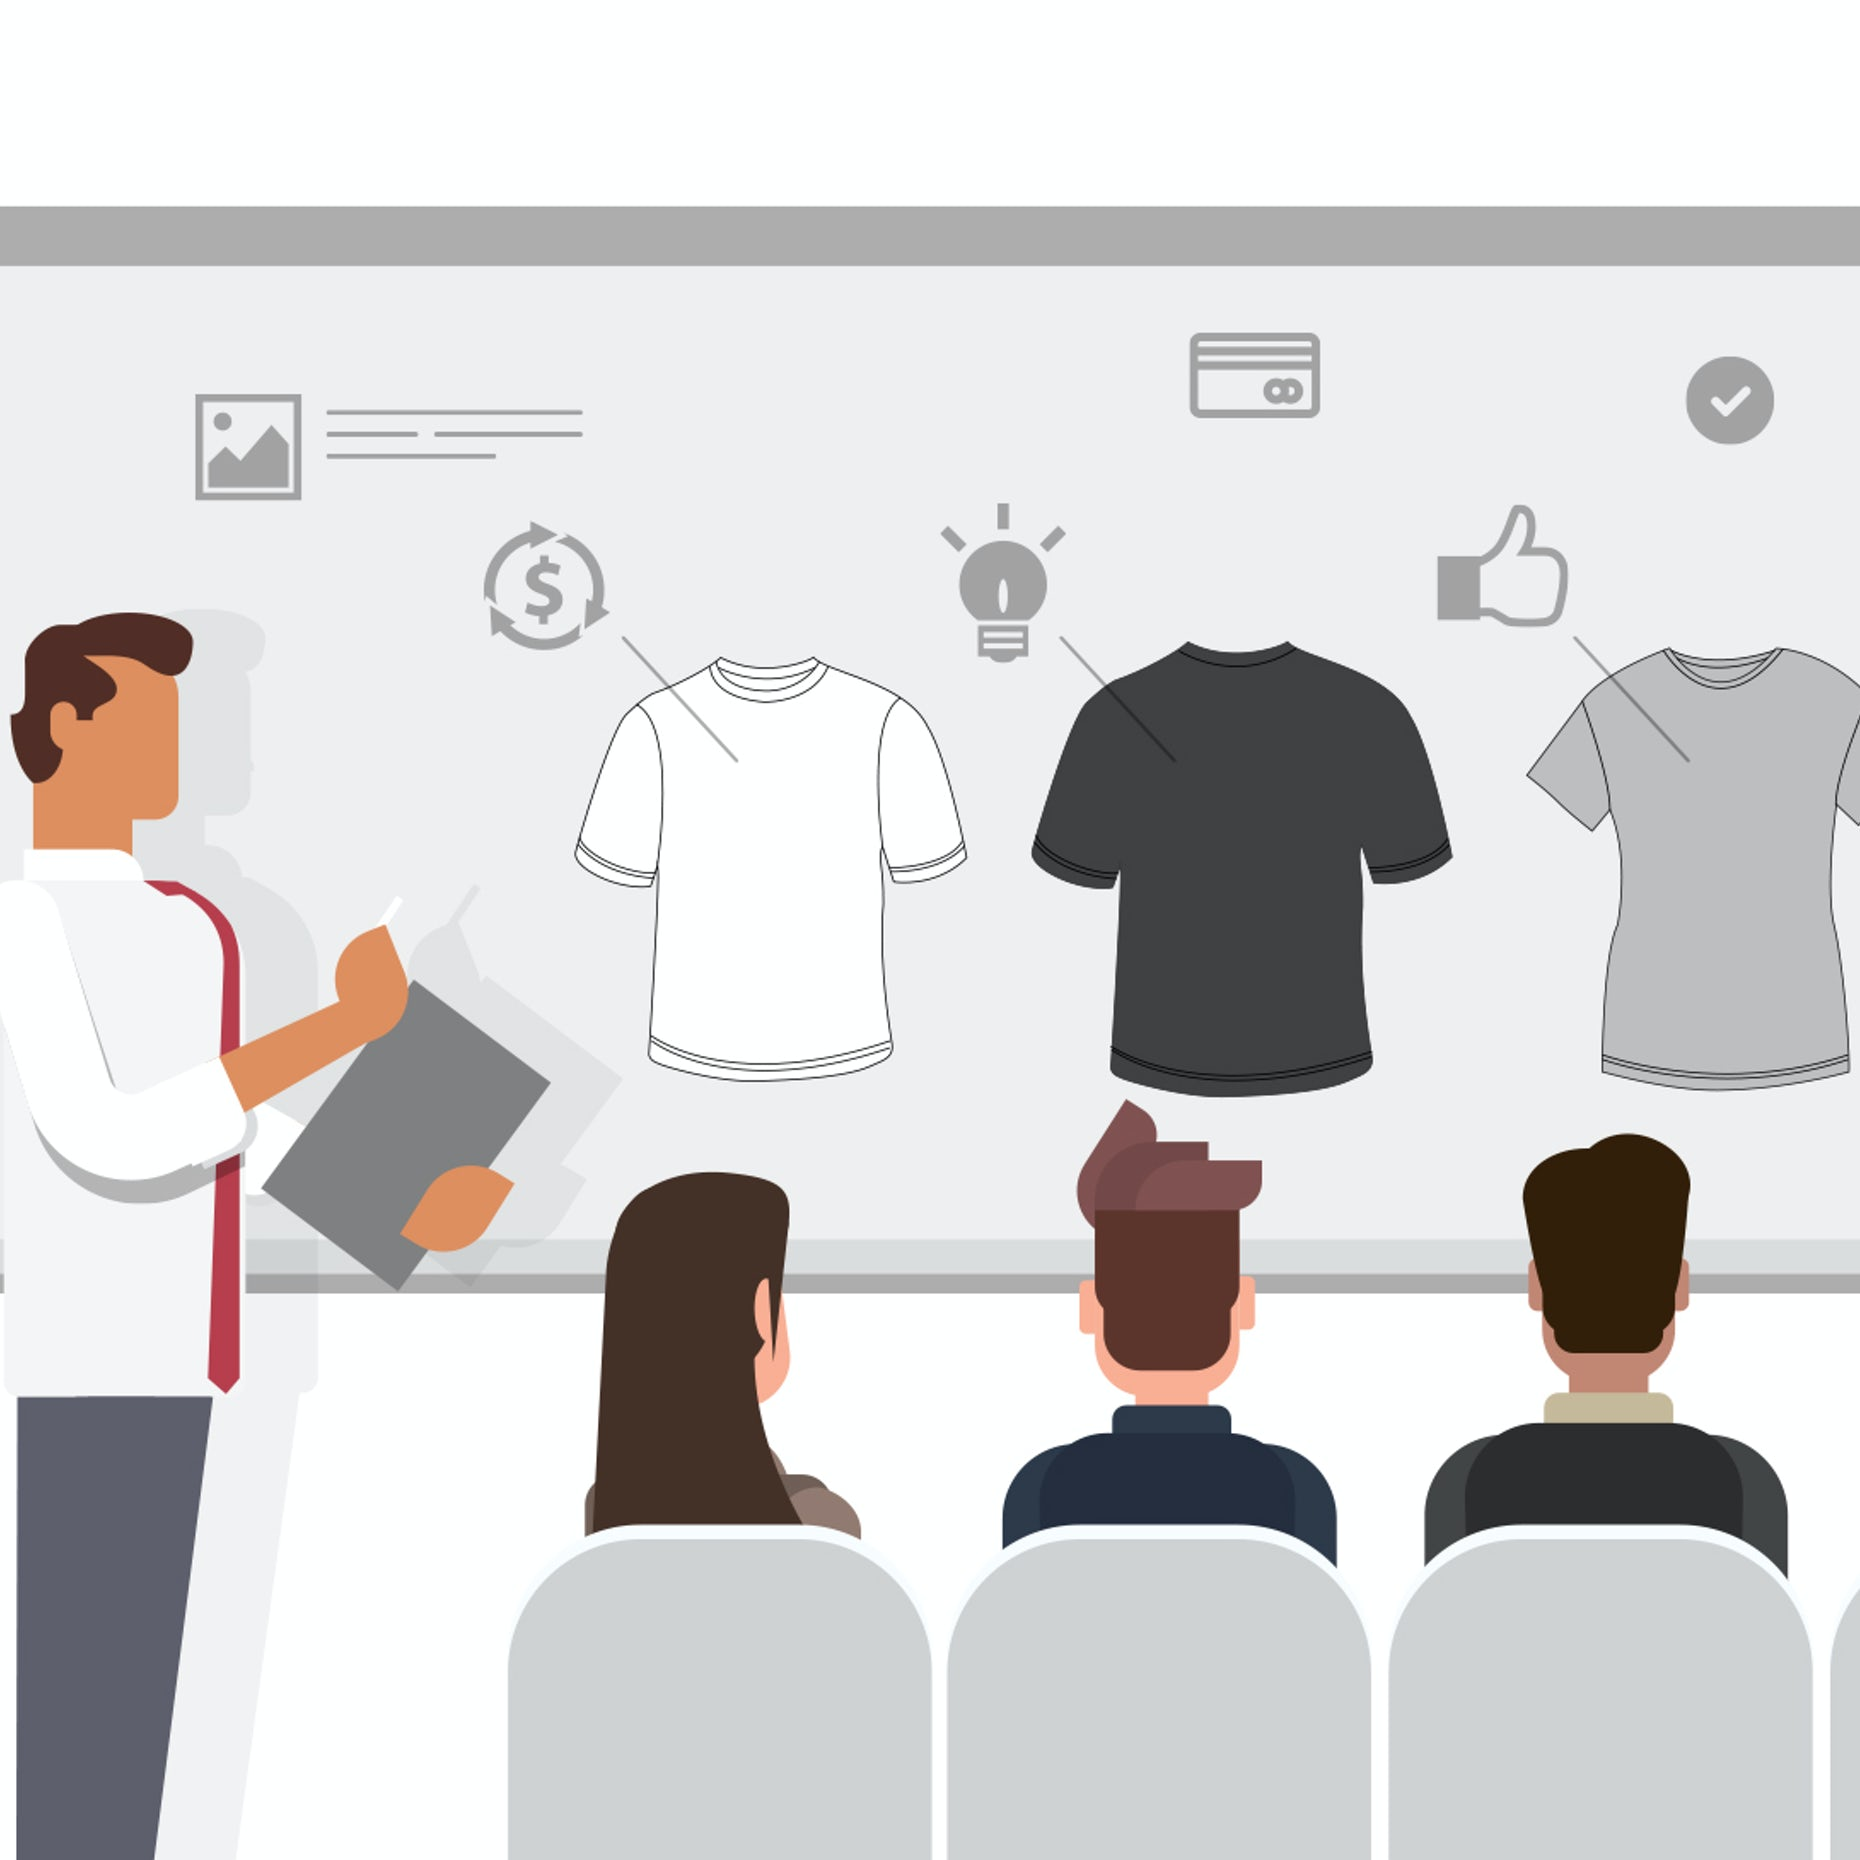 cb9702c29 How to design an awesome company t-shirt for your business - 99designs